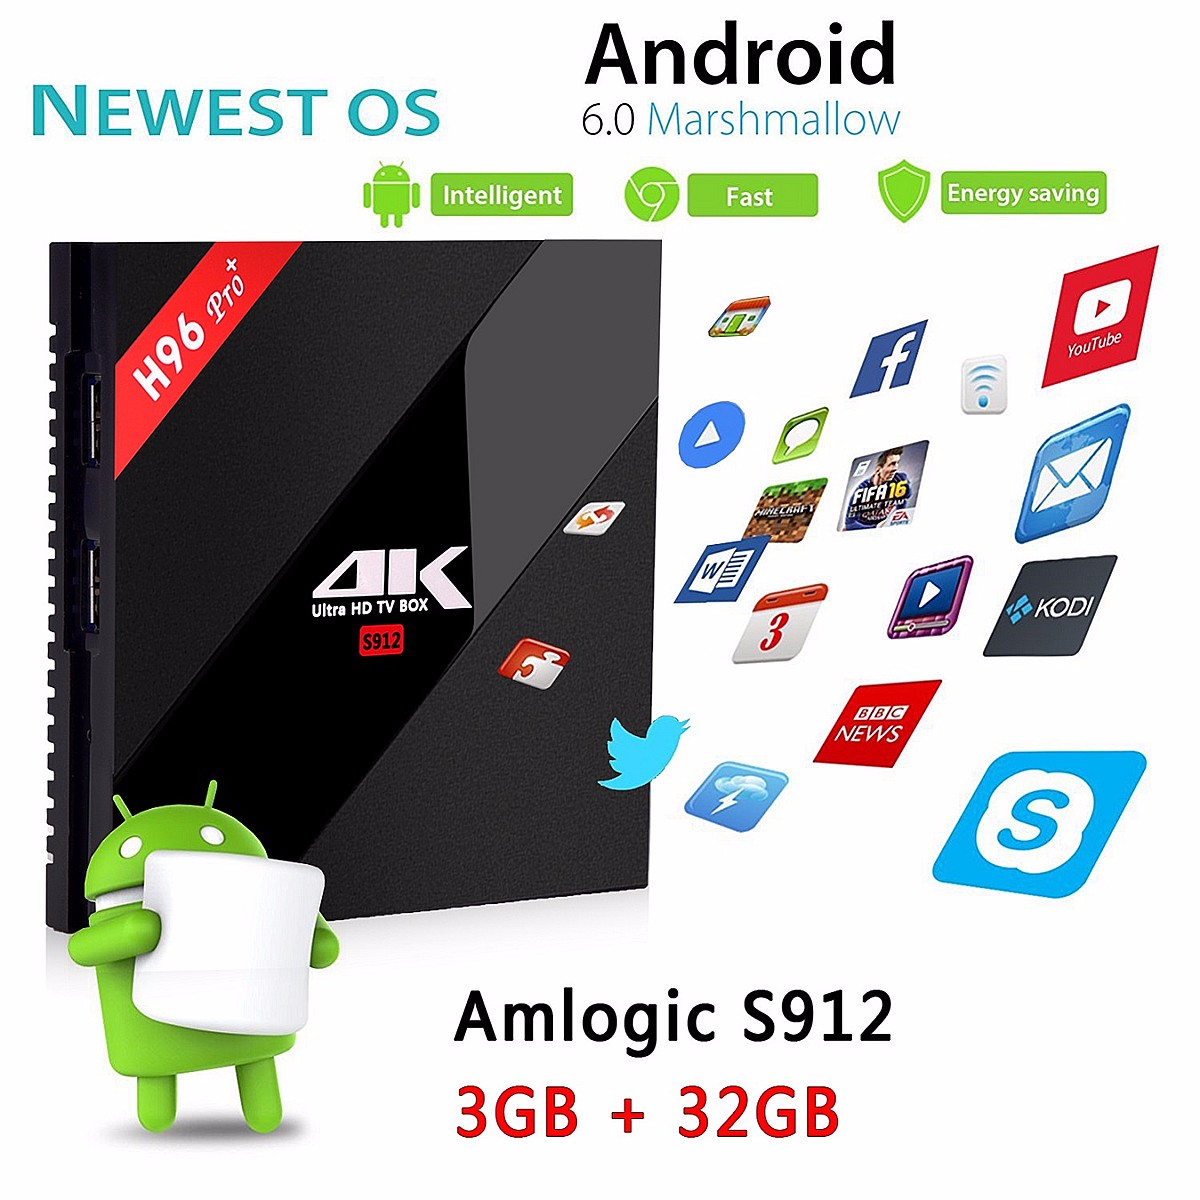 H96 PRO PLUS Amlogic S912 Octa Core 3GB RAM 32GB ROM TV Box 6.0 Marshmallow Bluetooth TV Box With Mini Wireless Keyboard